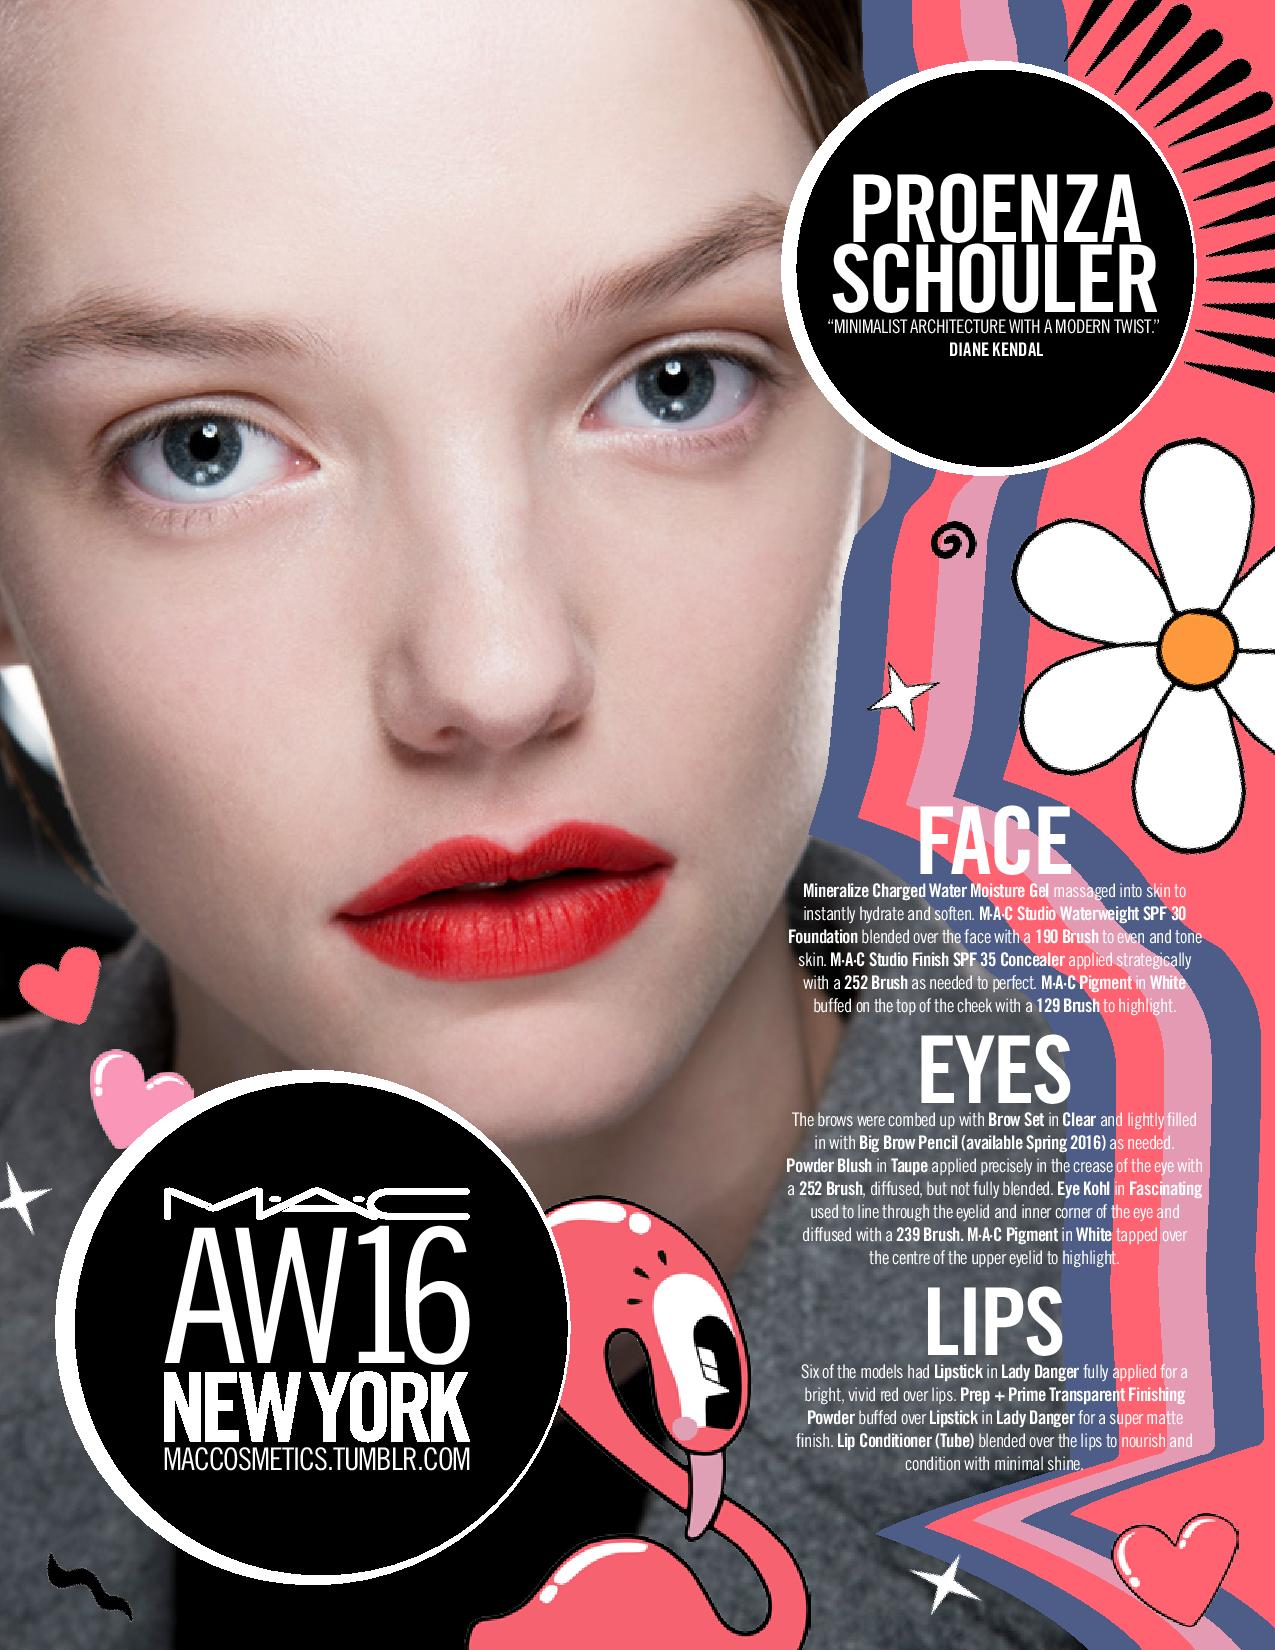 AW16_DAILY FACECHART_NEW YORK_FEB 17 (Delpozo, Michael Kors, Proenza Sch...-page-005